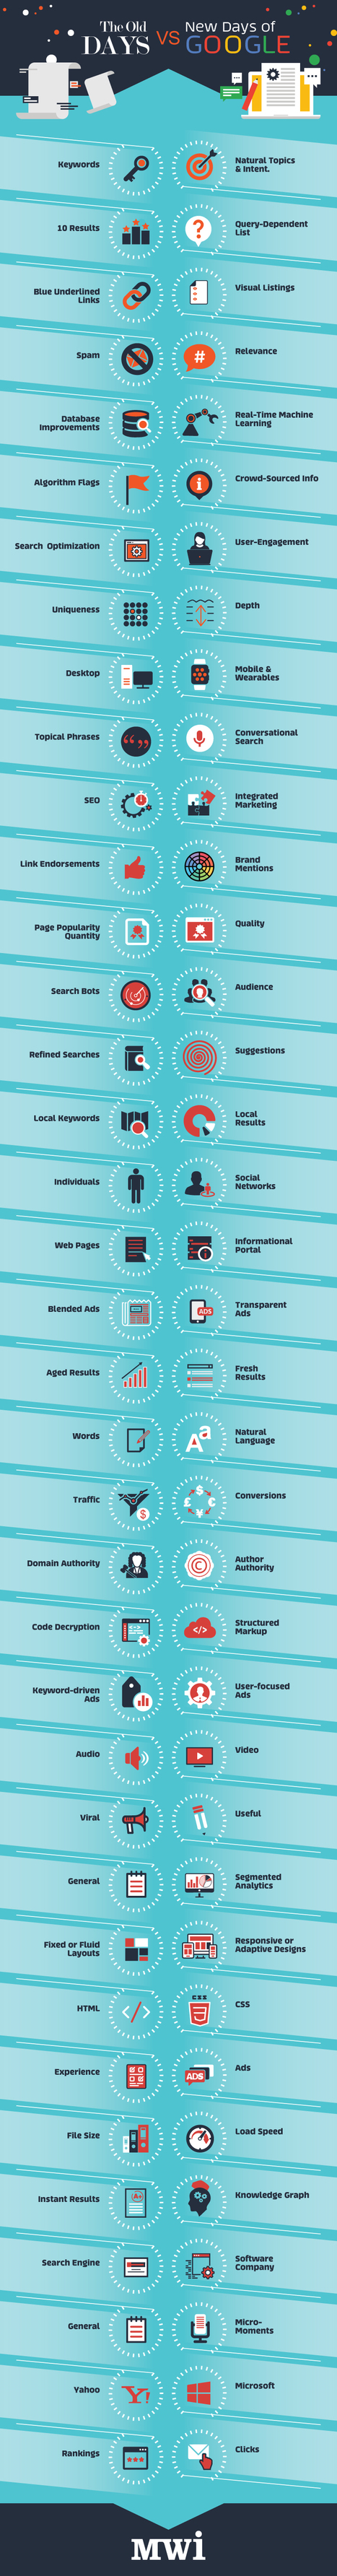 The Old Days VS New Days of Google [Infographic] | The Perfect Storm Team | Scoop.it